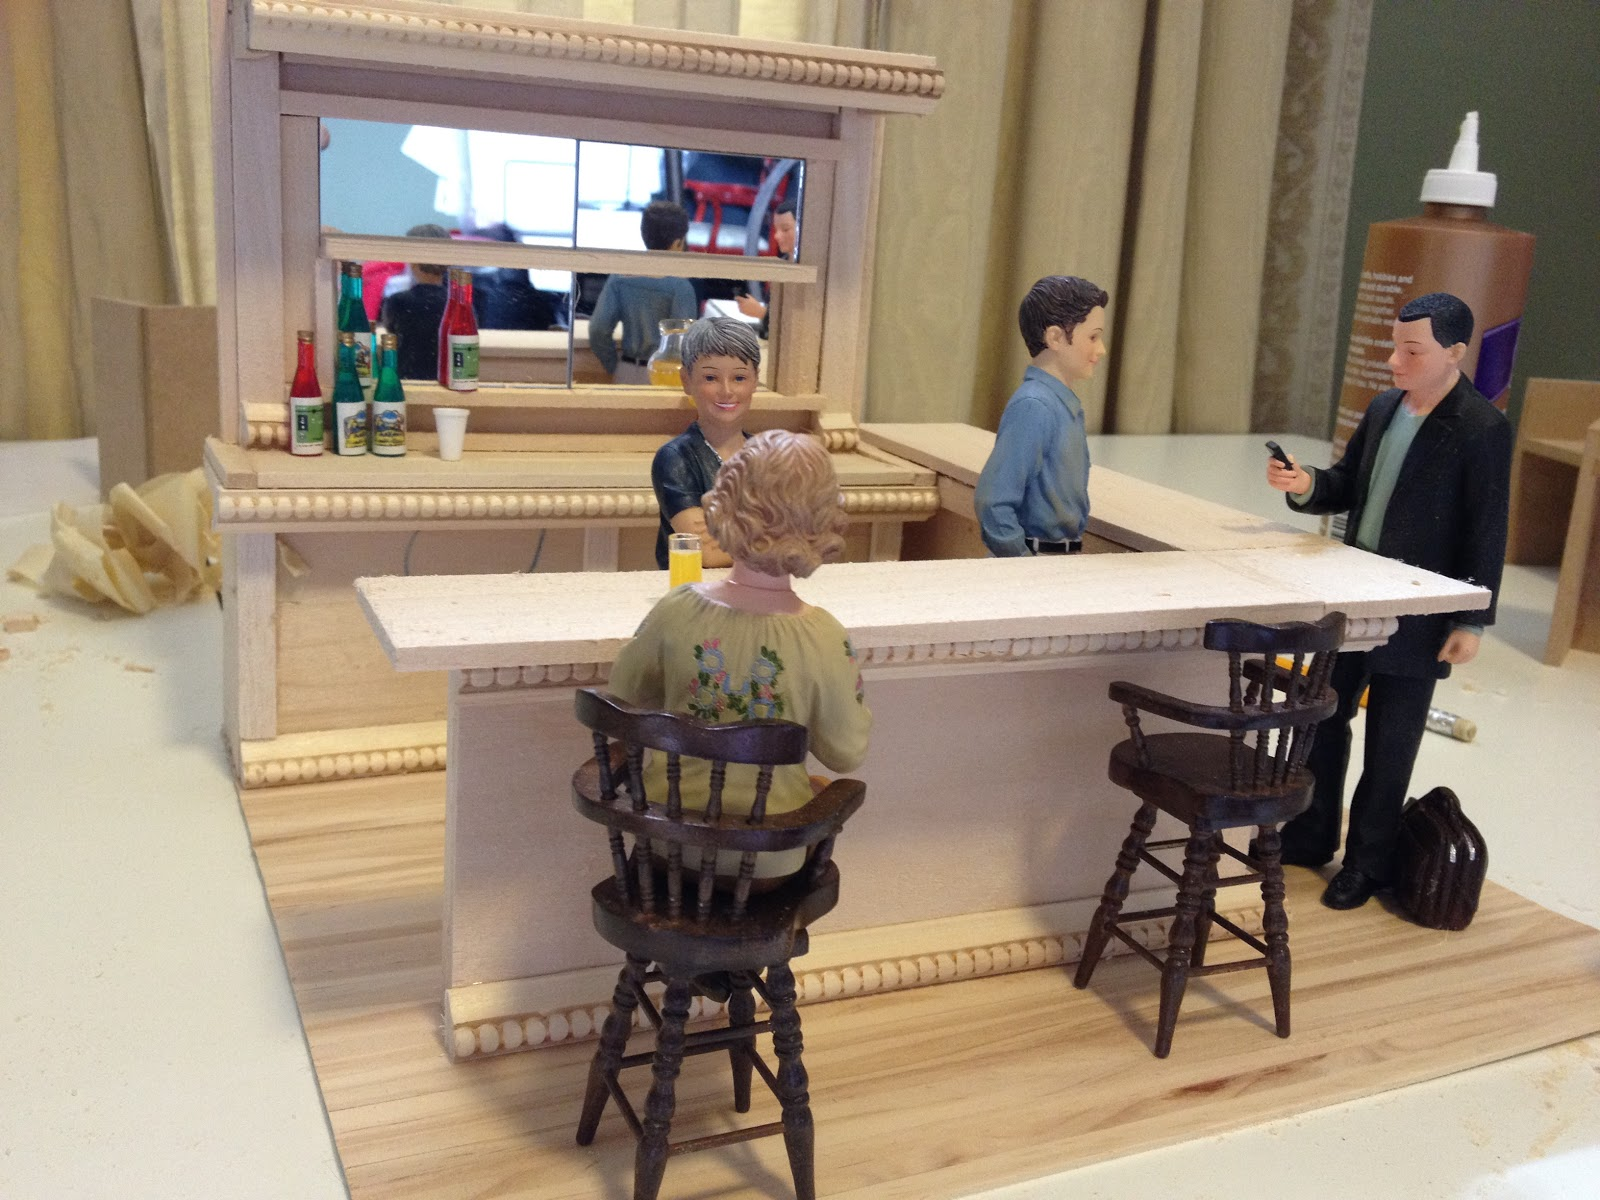 Jocelyn 39 s mountfield dollhouse scratch built dollhouse for How to build a home bar from scratch